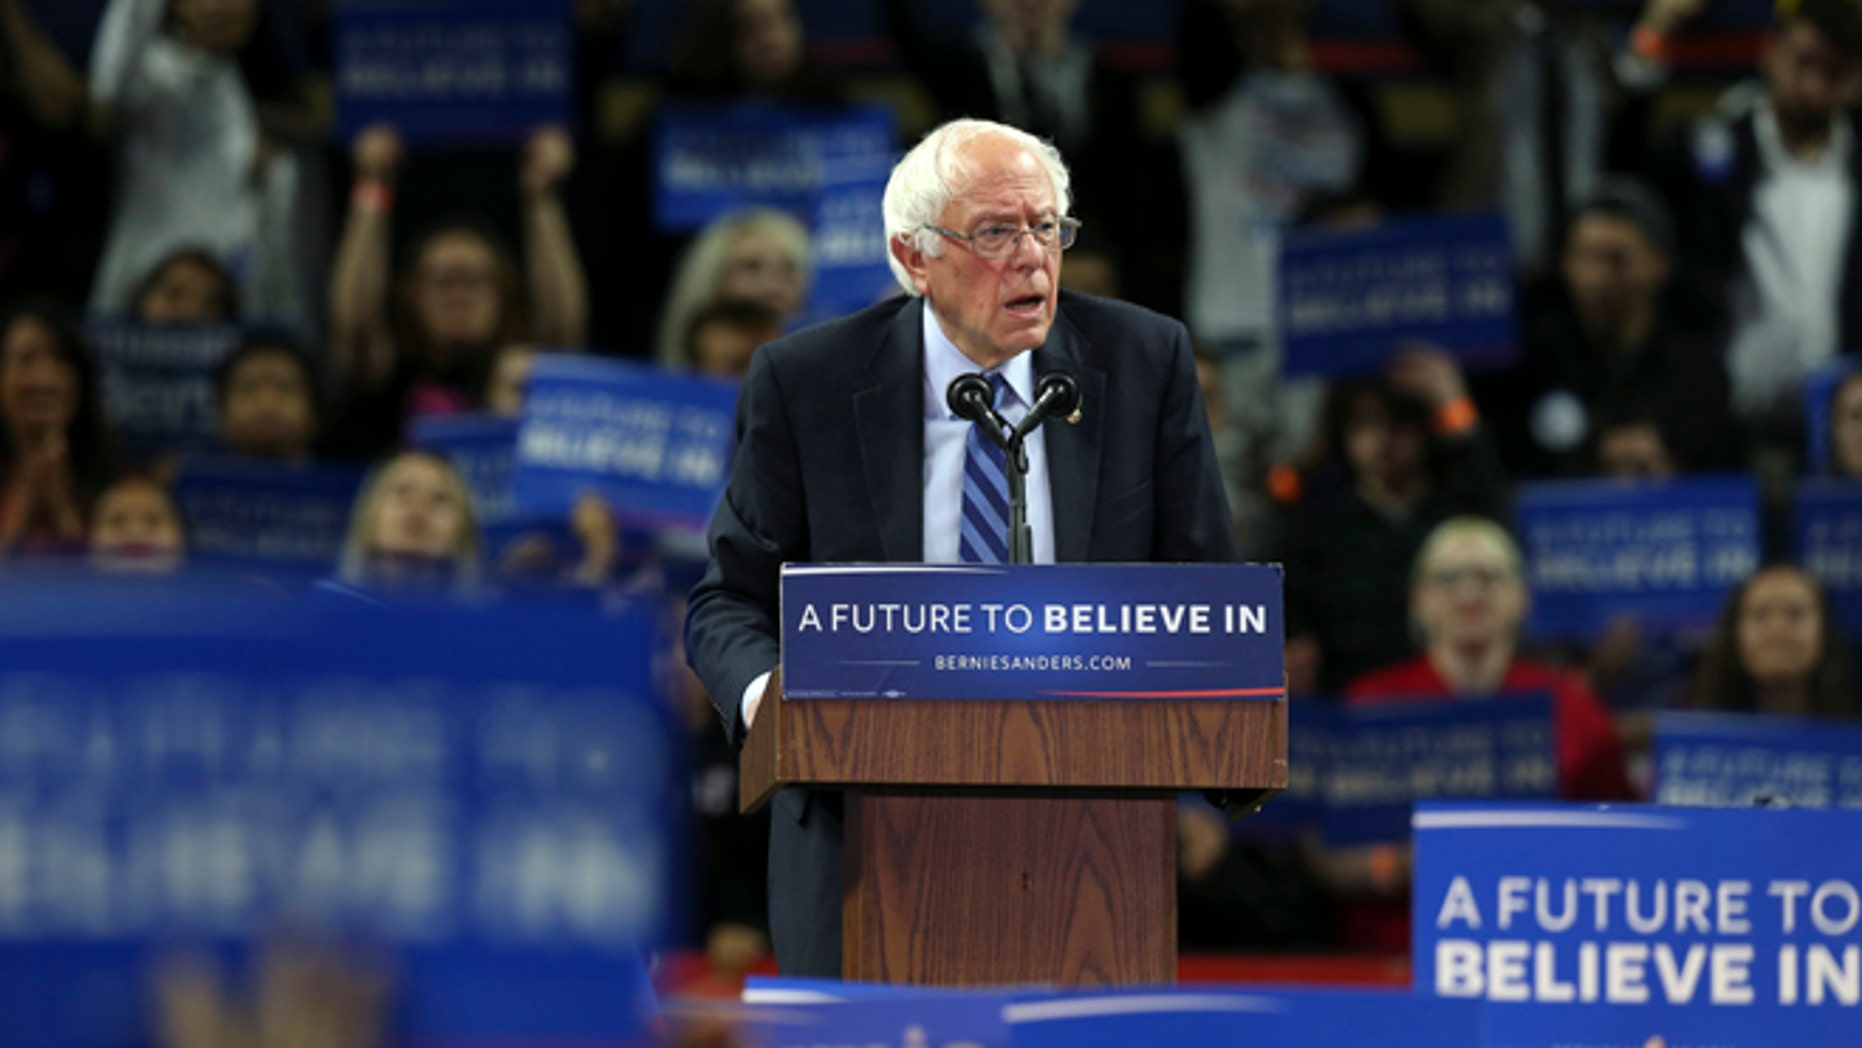 Presidential candidate Sen. Bernie Sanders at a campaign rally in Piscataway, N.J.  on May 8, 2016.